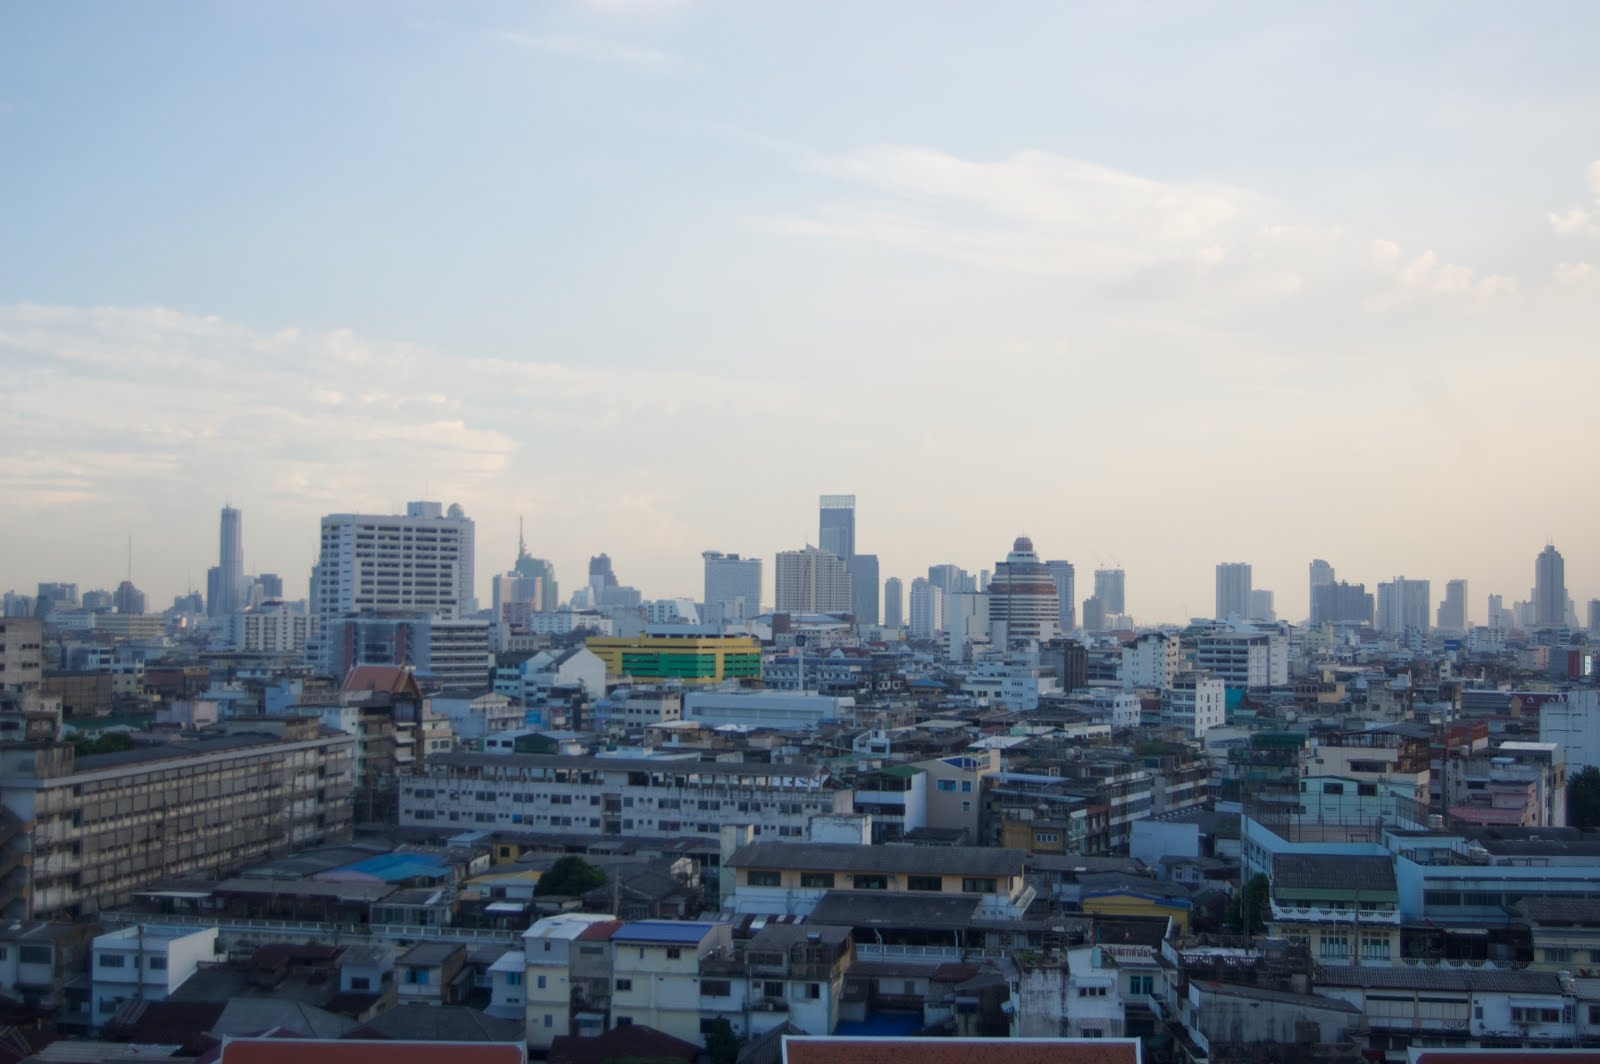 3 Days in Bangkok - A City Guide // What to eat, see, and do